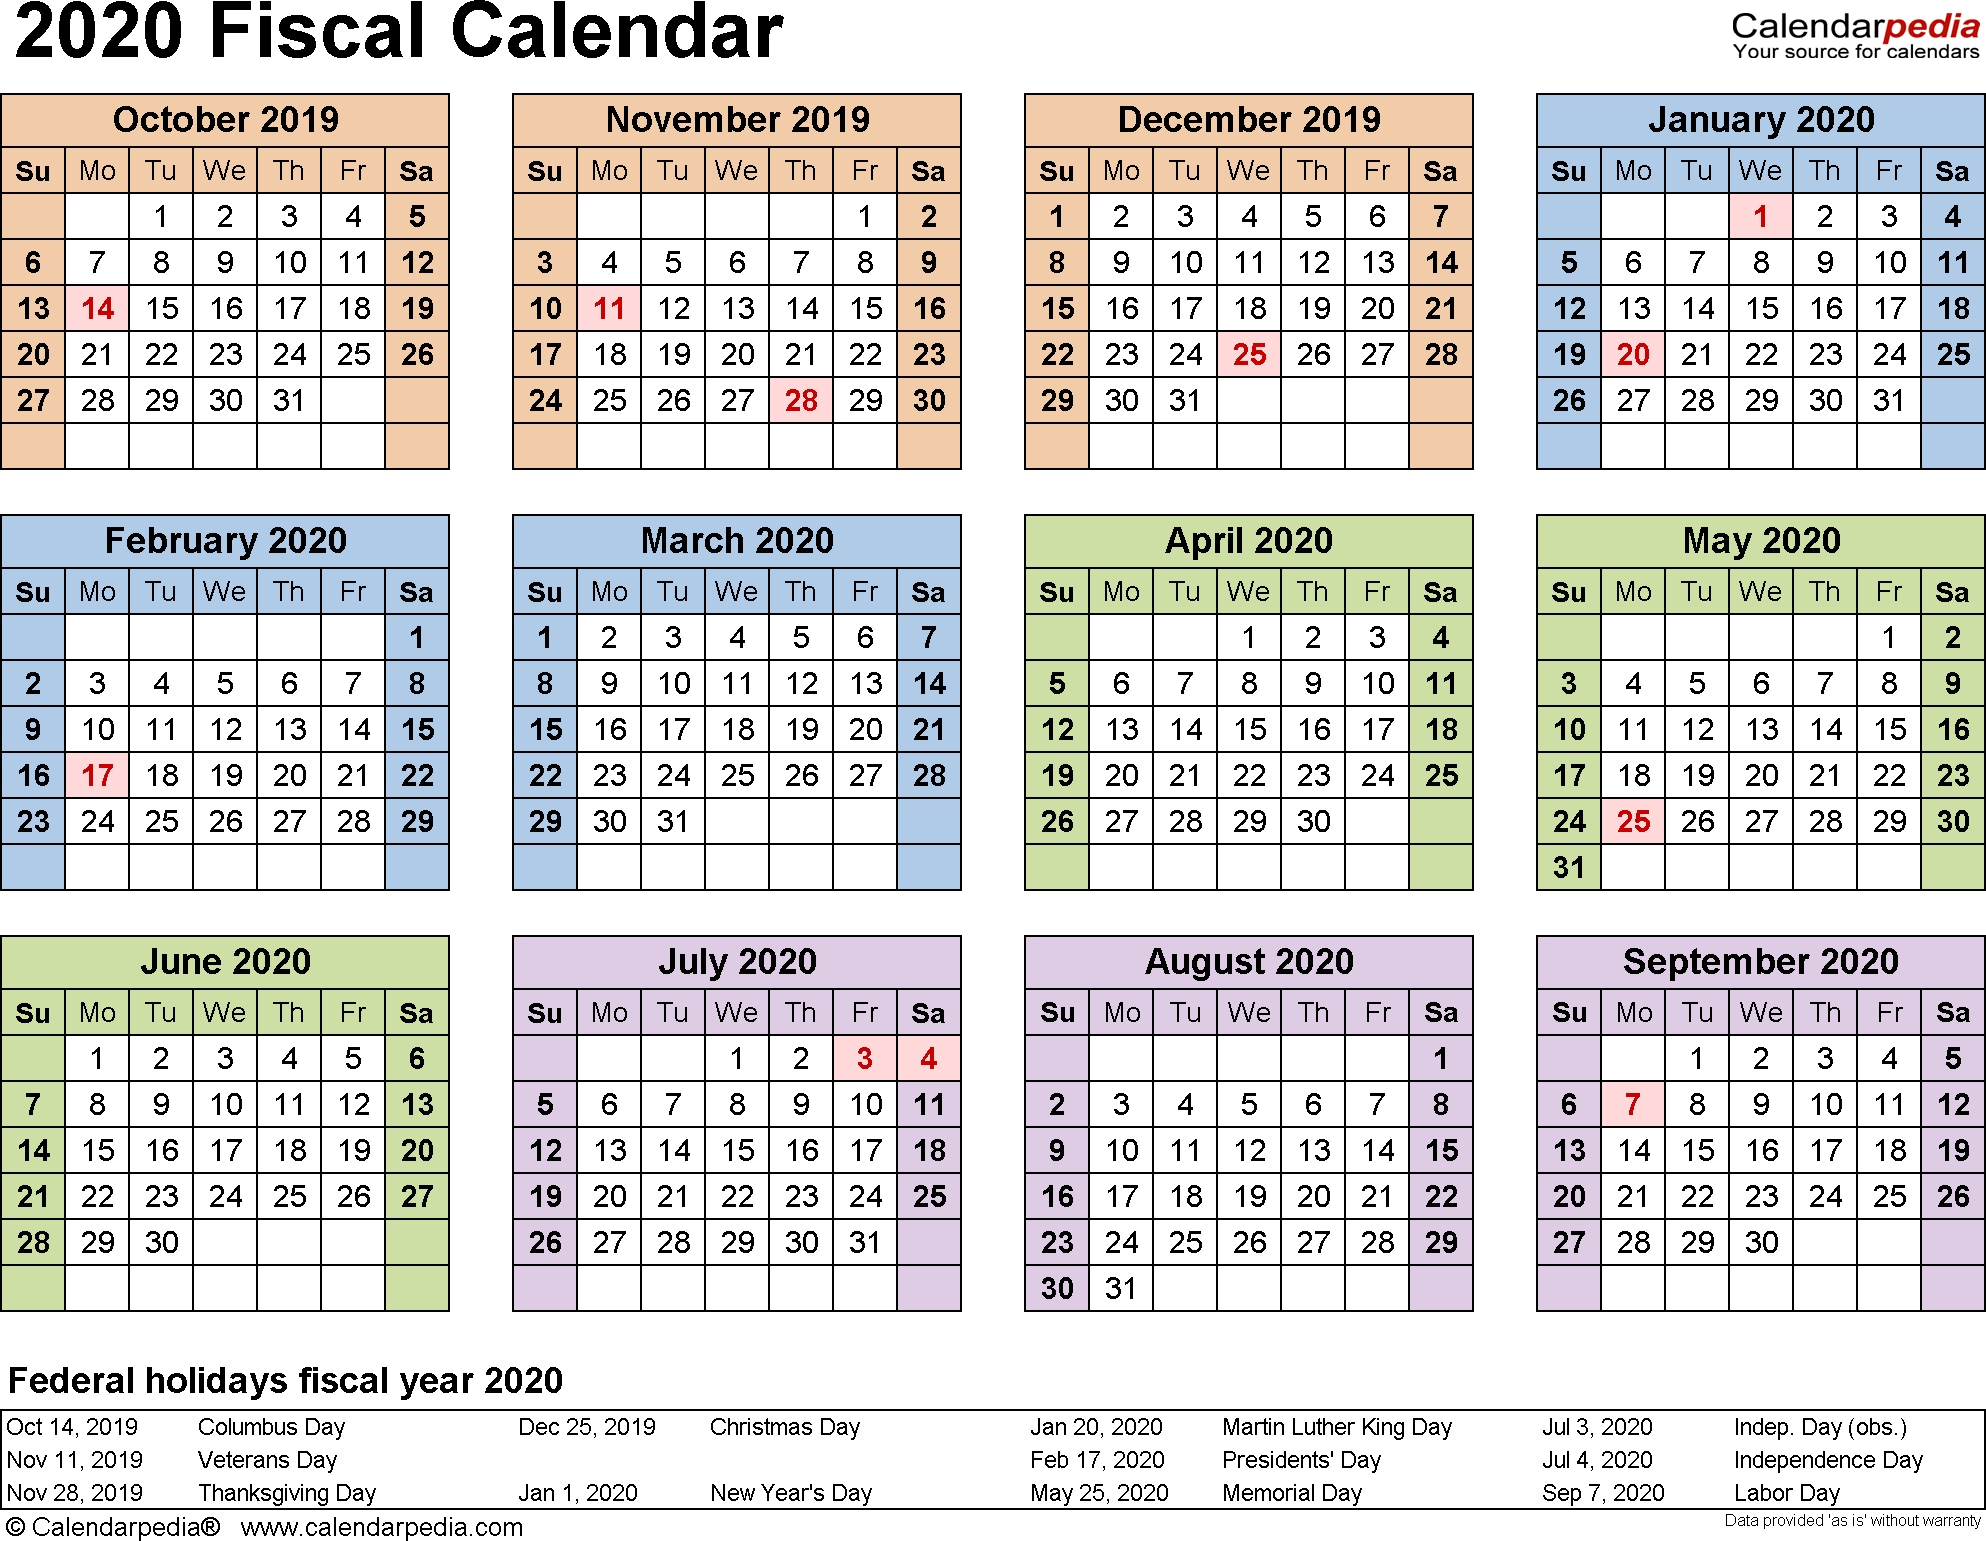 Fiscal Calendars 2020 As Free Printable Word Templates inside 4-4-5 Calendar 2020